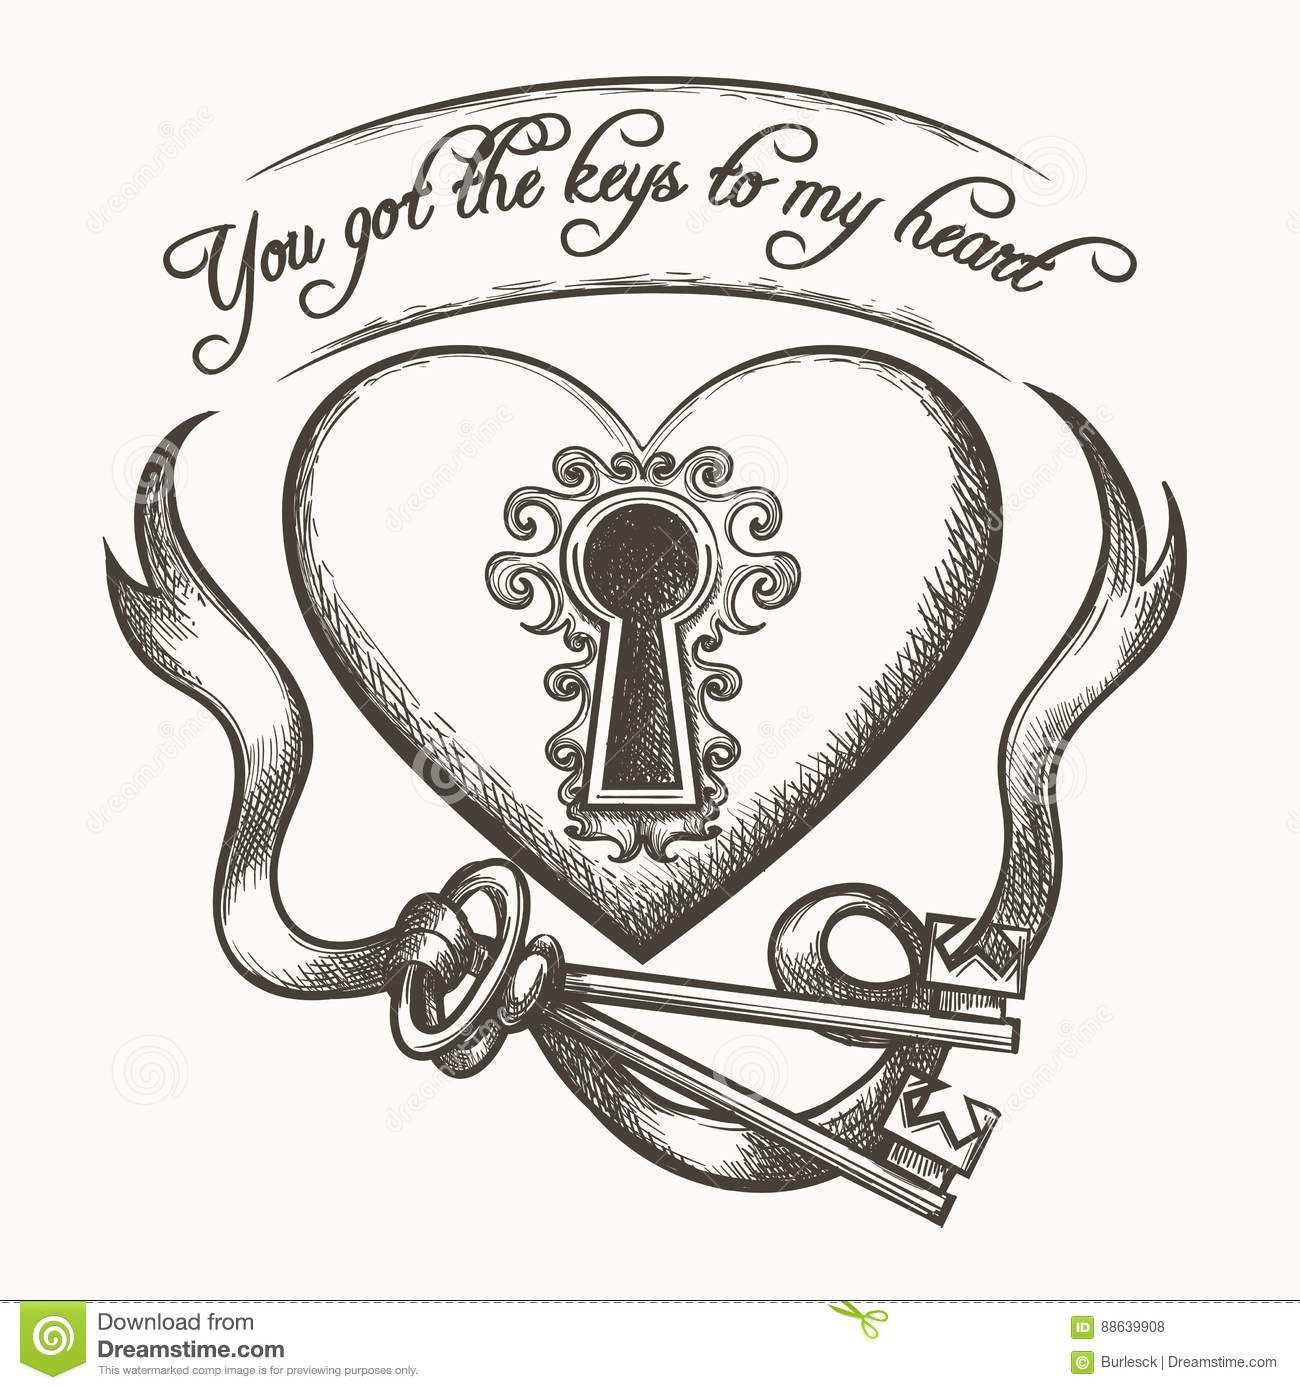 You Got The Keys To My Heart Vintage Hand Drawn Vector